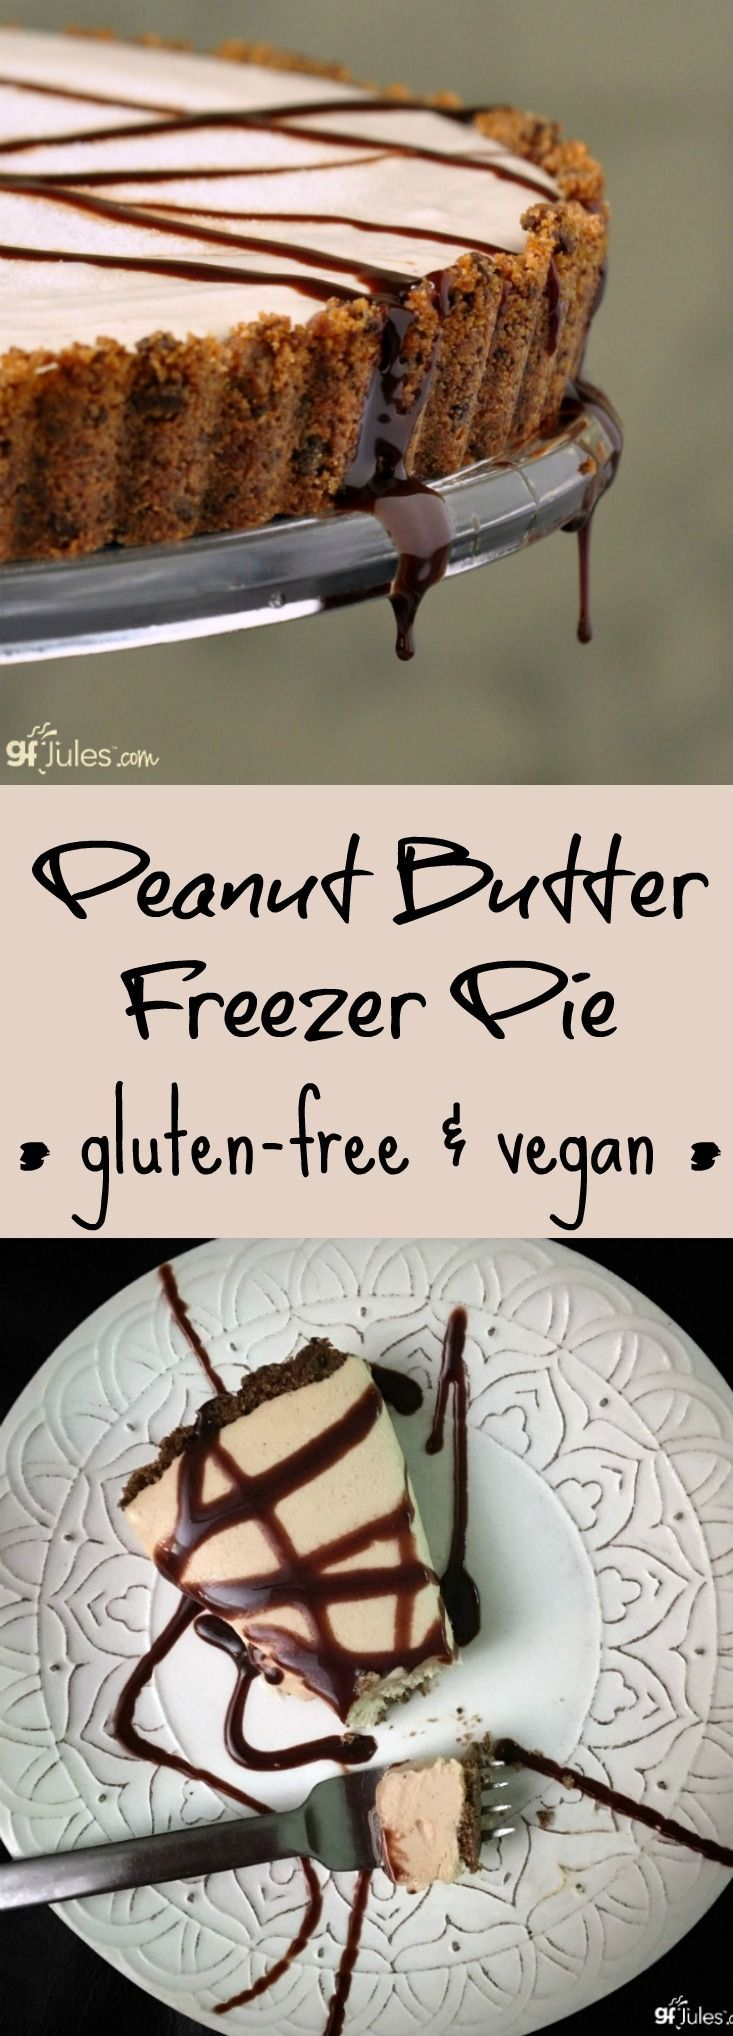 Food Photography: Gluten Free Peanut Butter Cookie Pie Food Photography: Gluten Free Peanut Butter